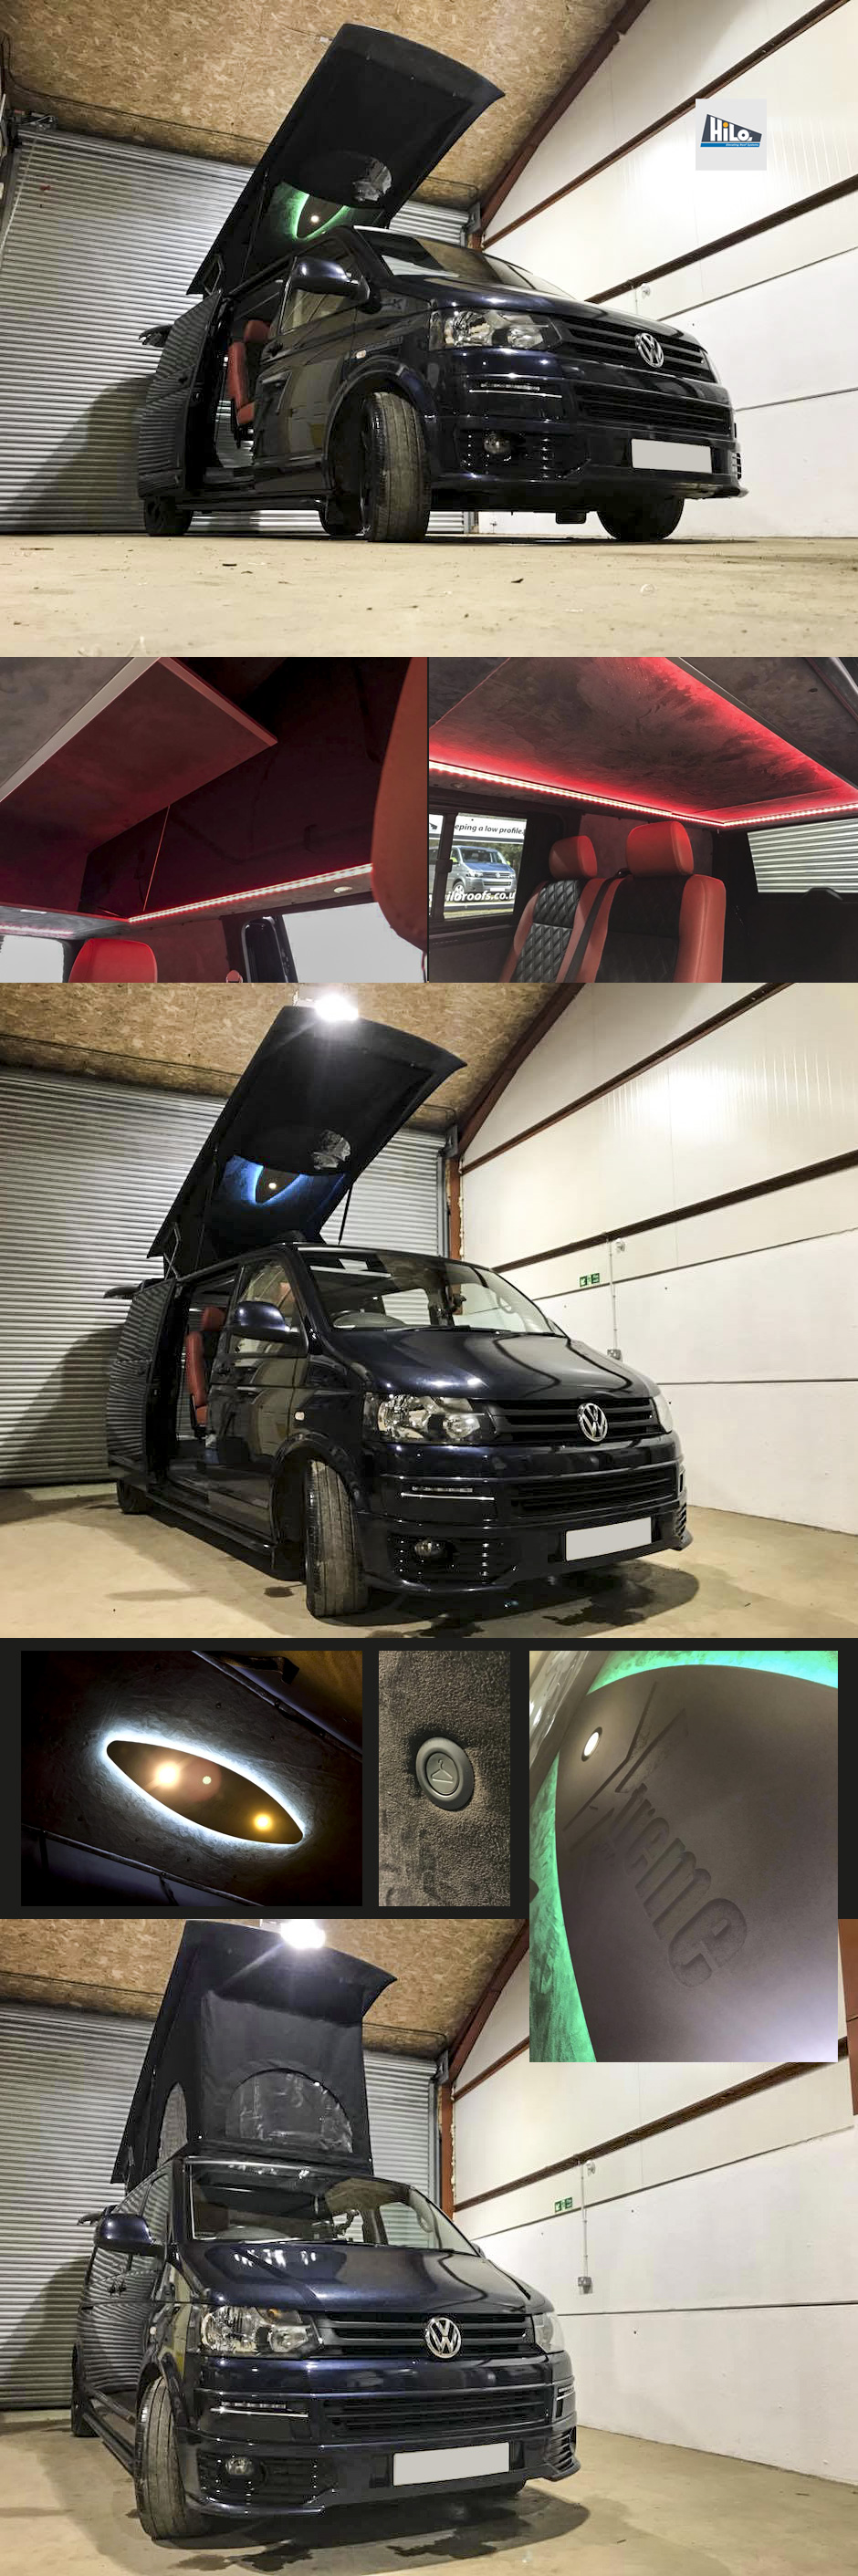 xtremevan vw t6 hiloroof conversion